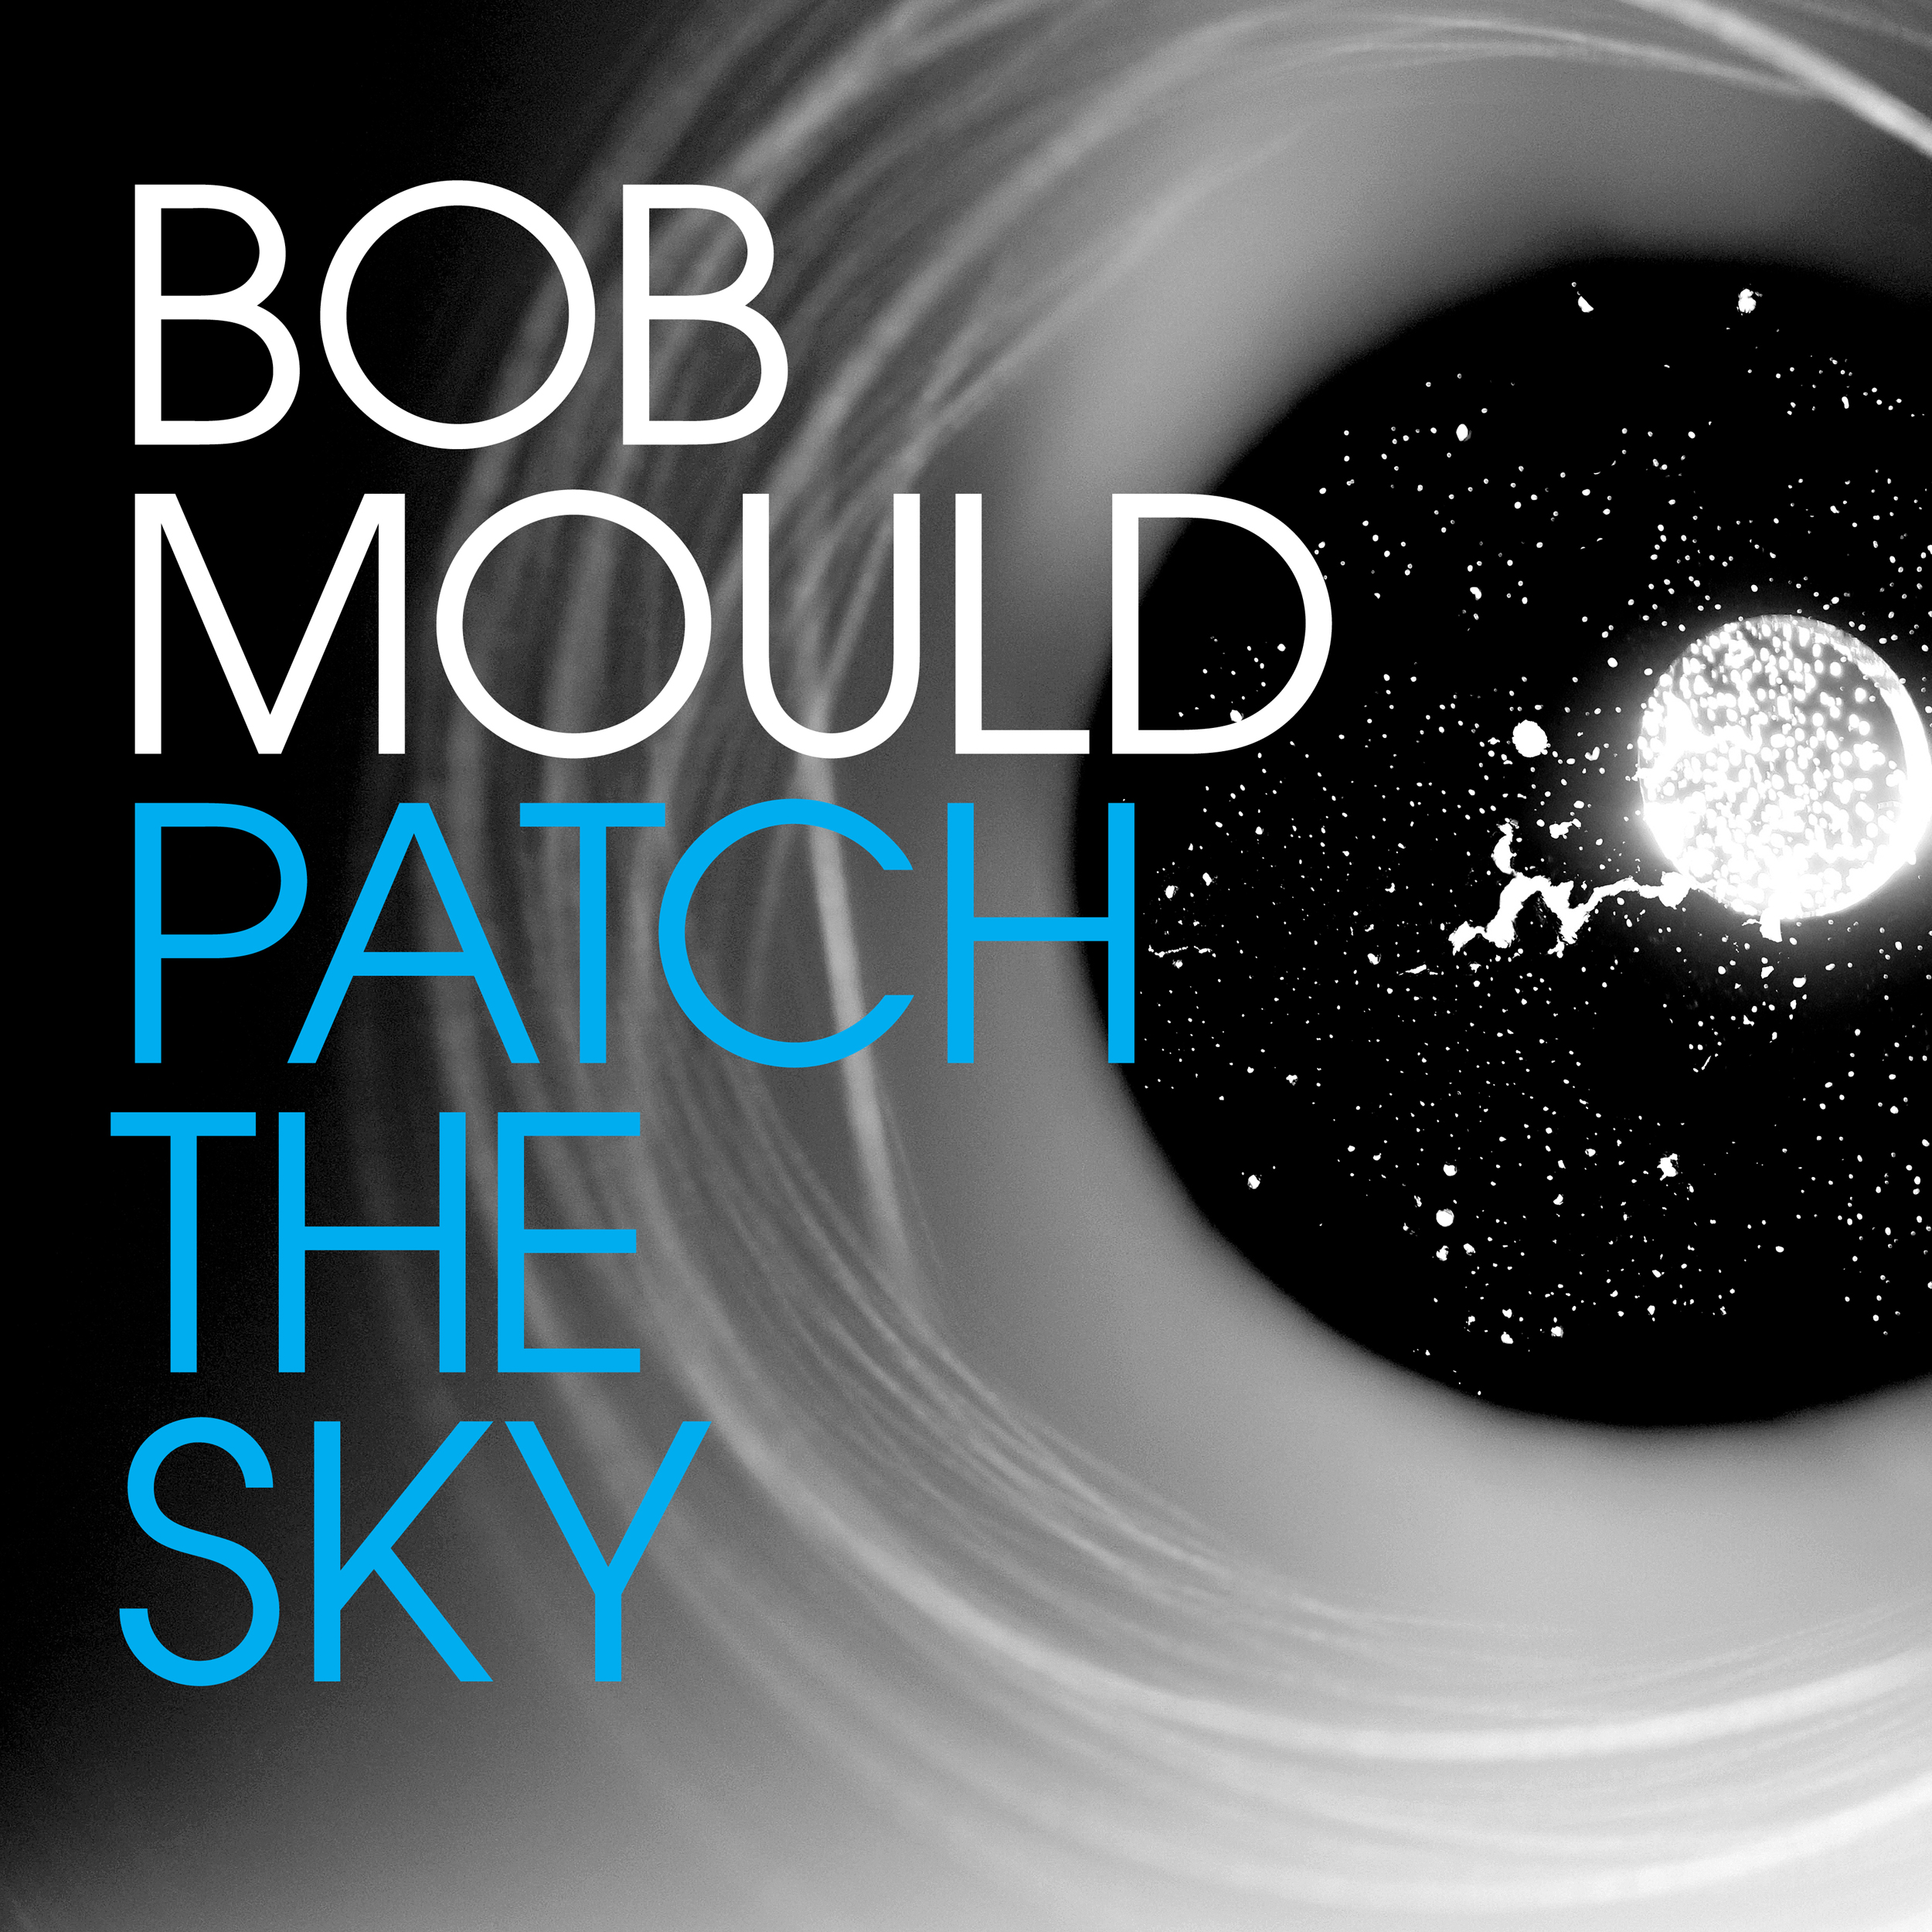 Patch The Sky  Bob Mould   Kevin: Stream It Paul: Buy It Patrick: Stream It Eduardo: Stream It   Official Site  |  Facebook  |  Twitter  |  Spotify